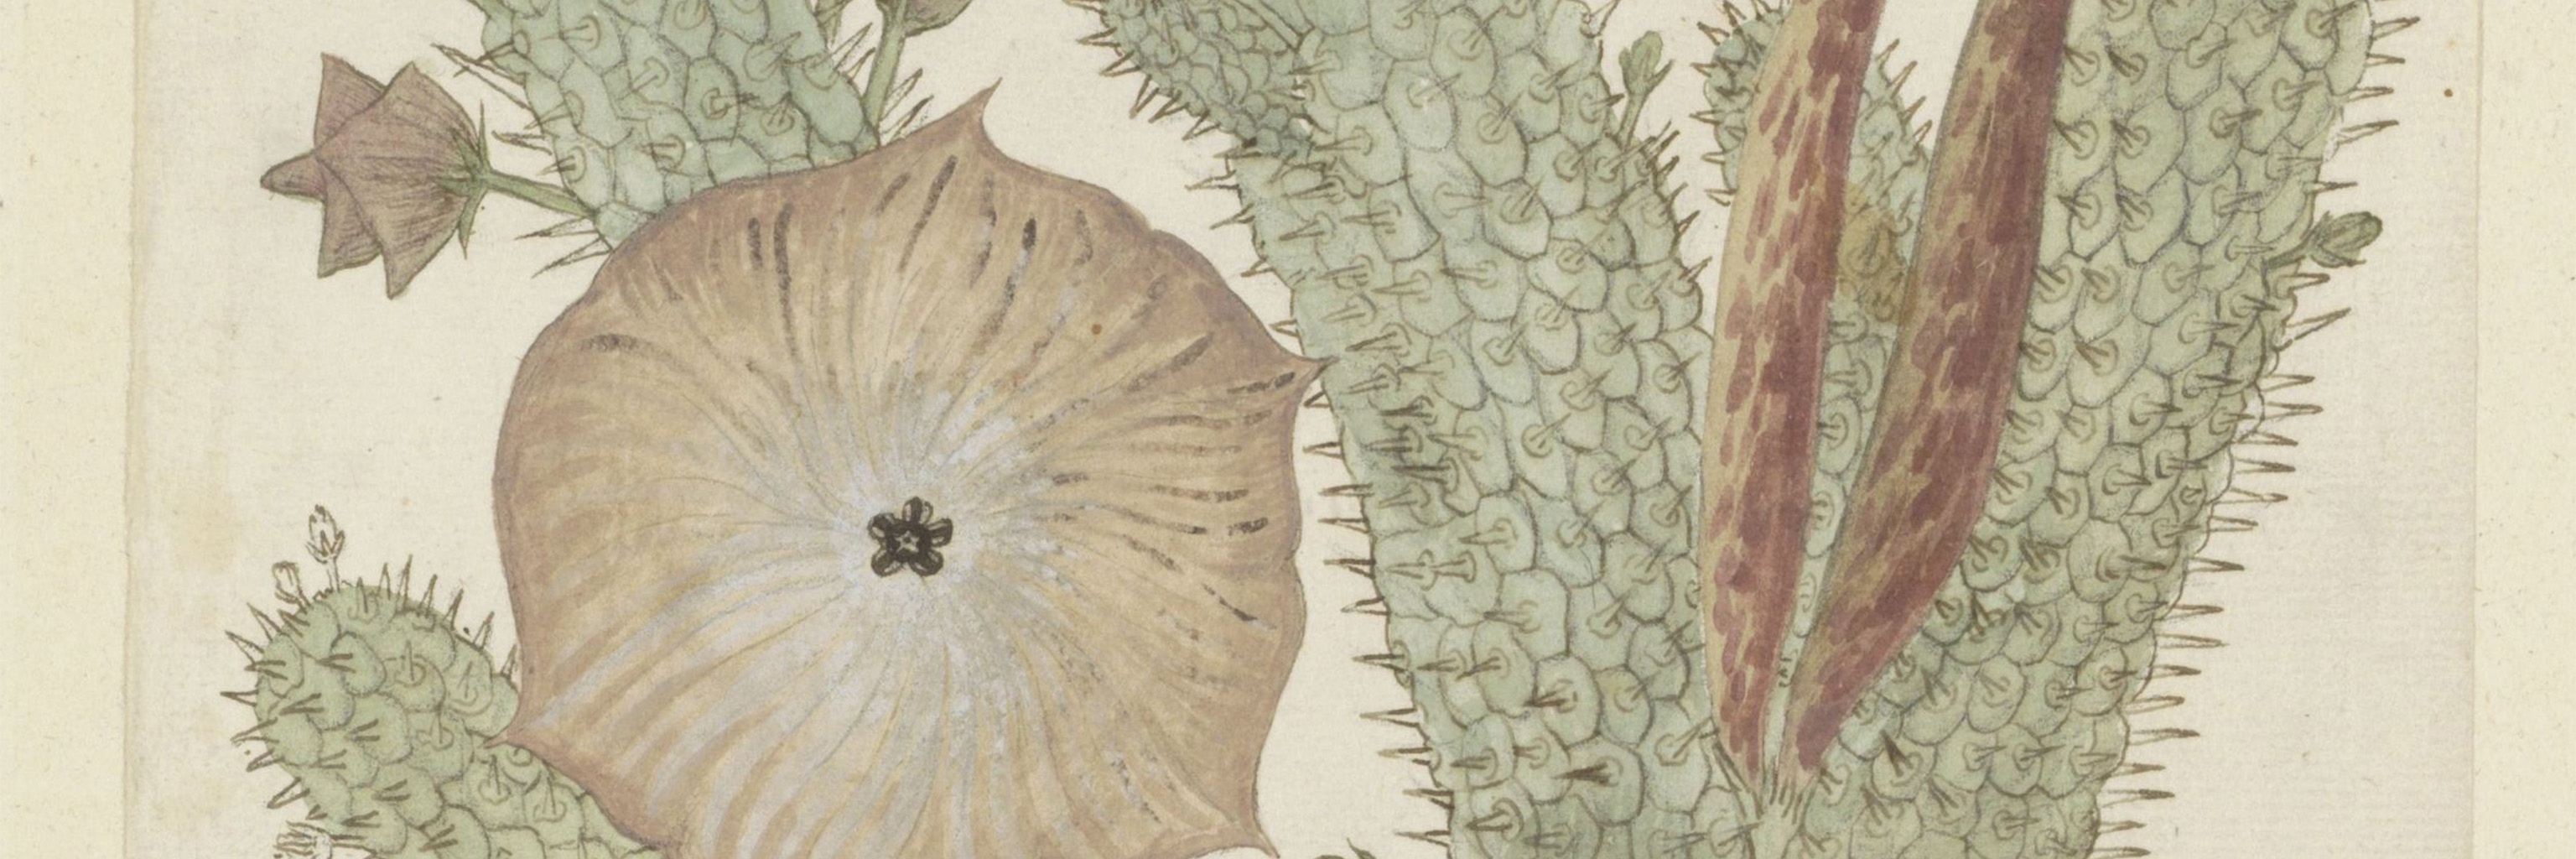 Illustration of the Hoodia gordonii plant.